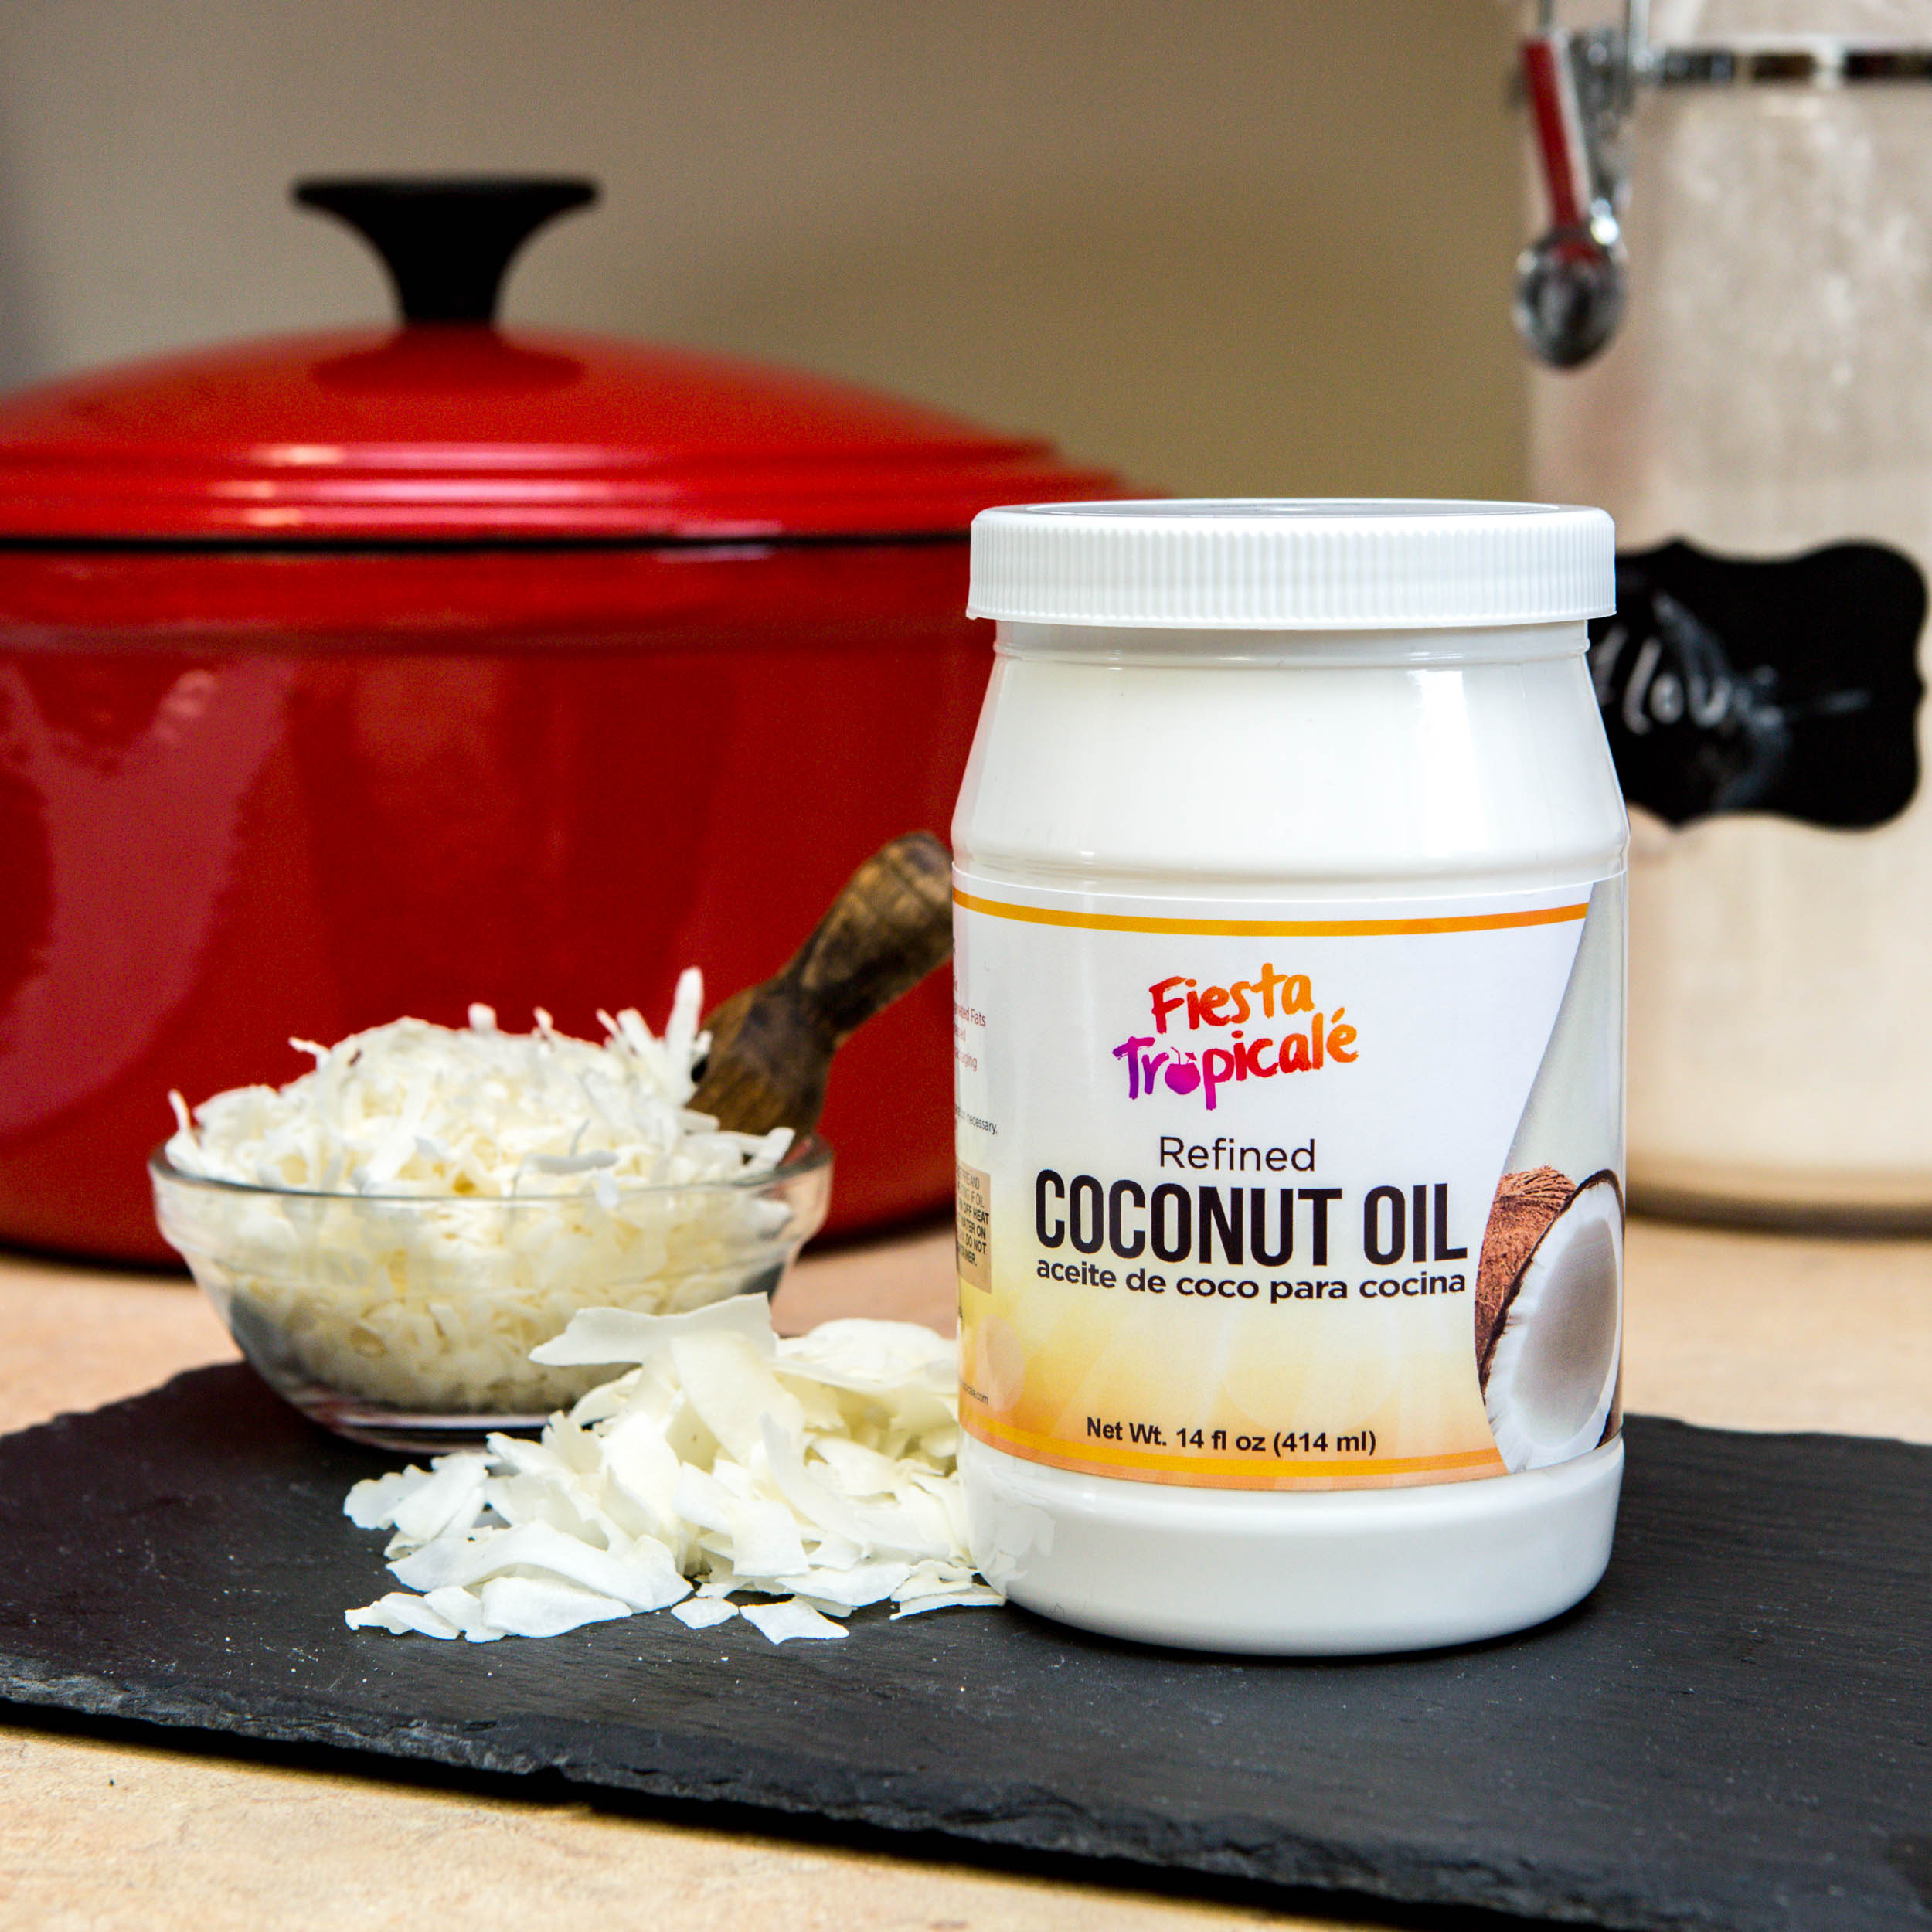 Fiesta Tropicale Refined Coconut Oil on Amazon